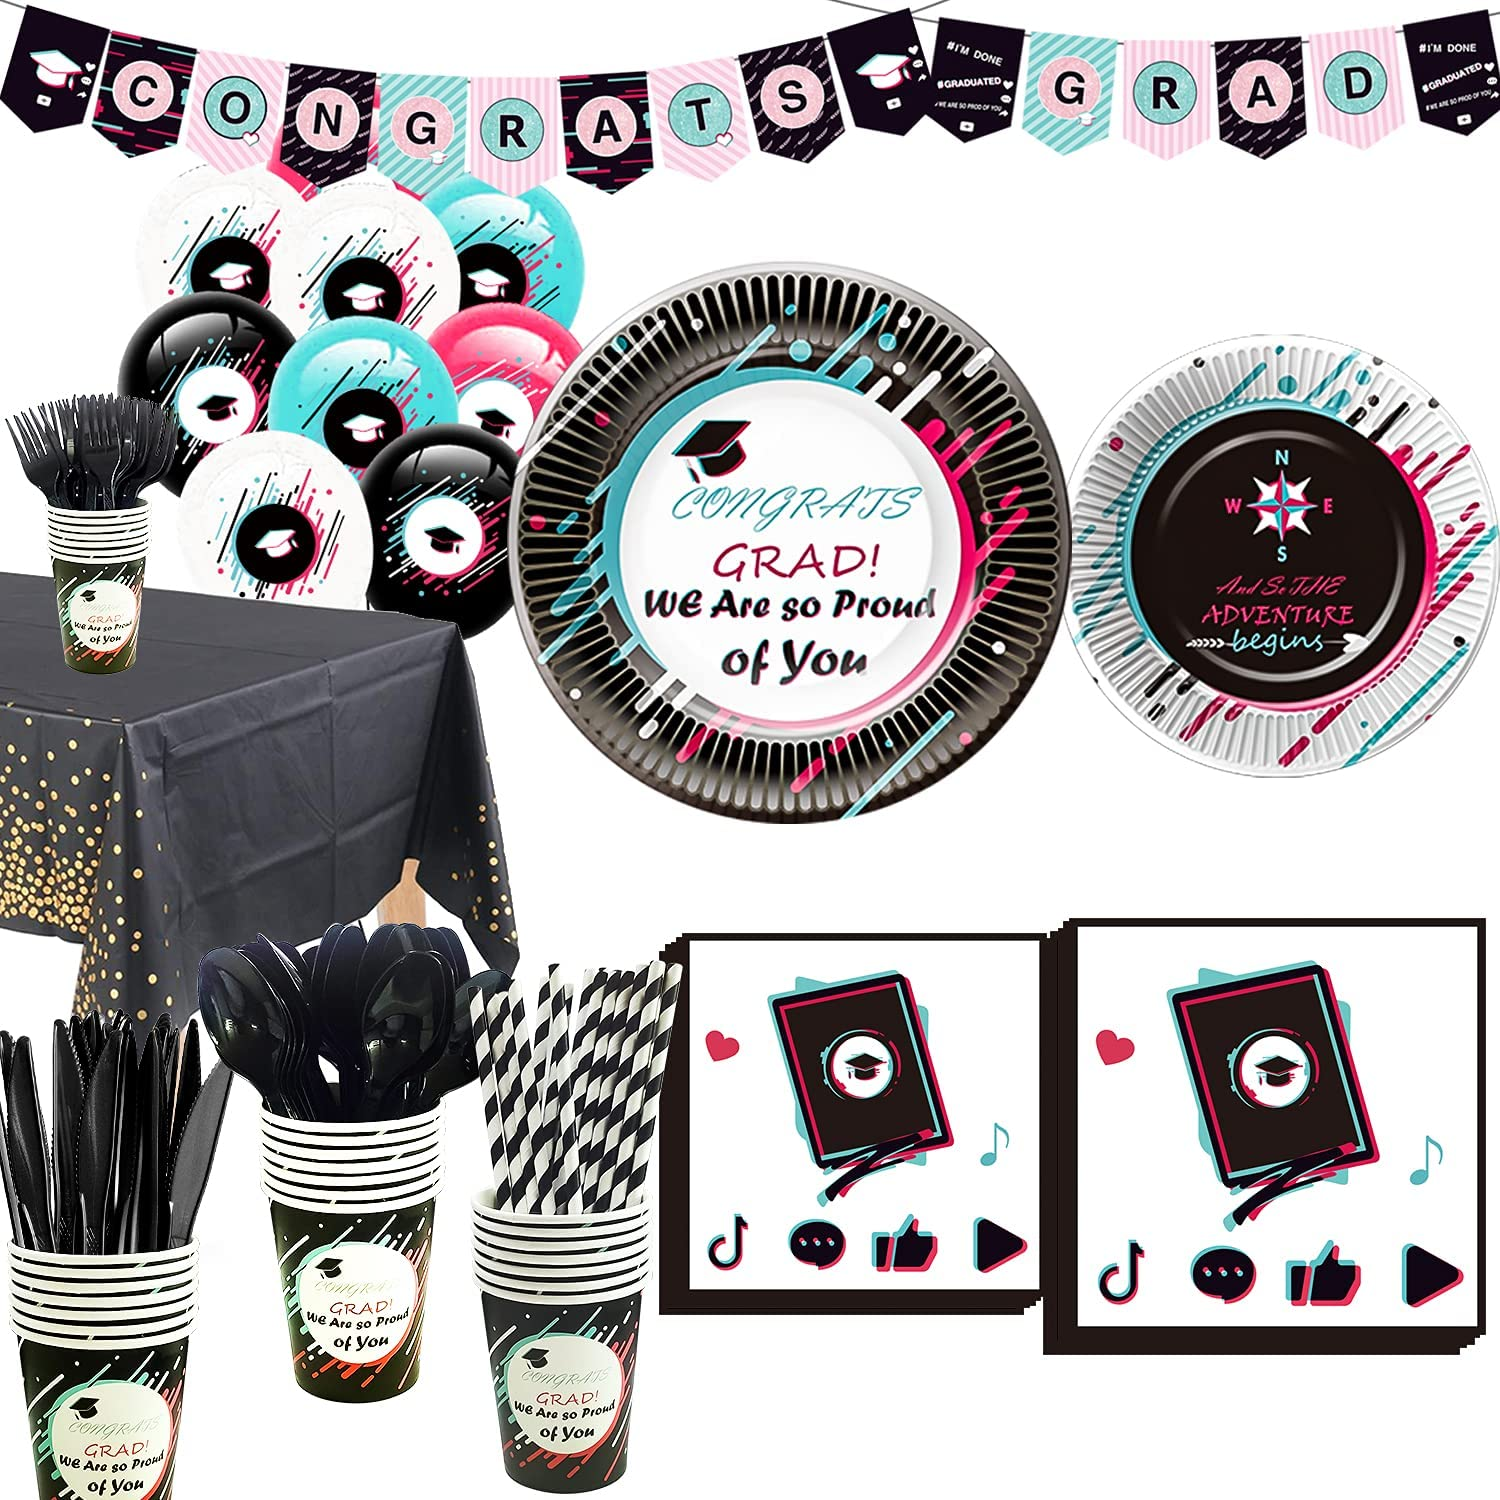 Graduation Party Supplies 2021 - Graduations Tableware Set Including Grad Banner, Paper Plates, Cups, Napkins, Balloons, Tablecloth, Cutlery, Straws, for Graduation Decorations 2021 | Serves 24: Kitchen & Dining